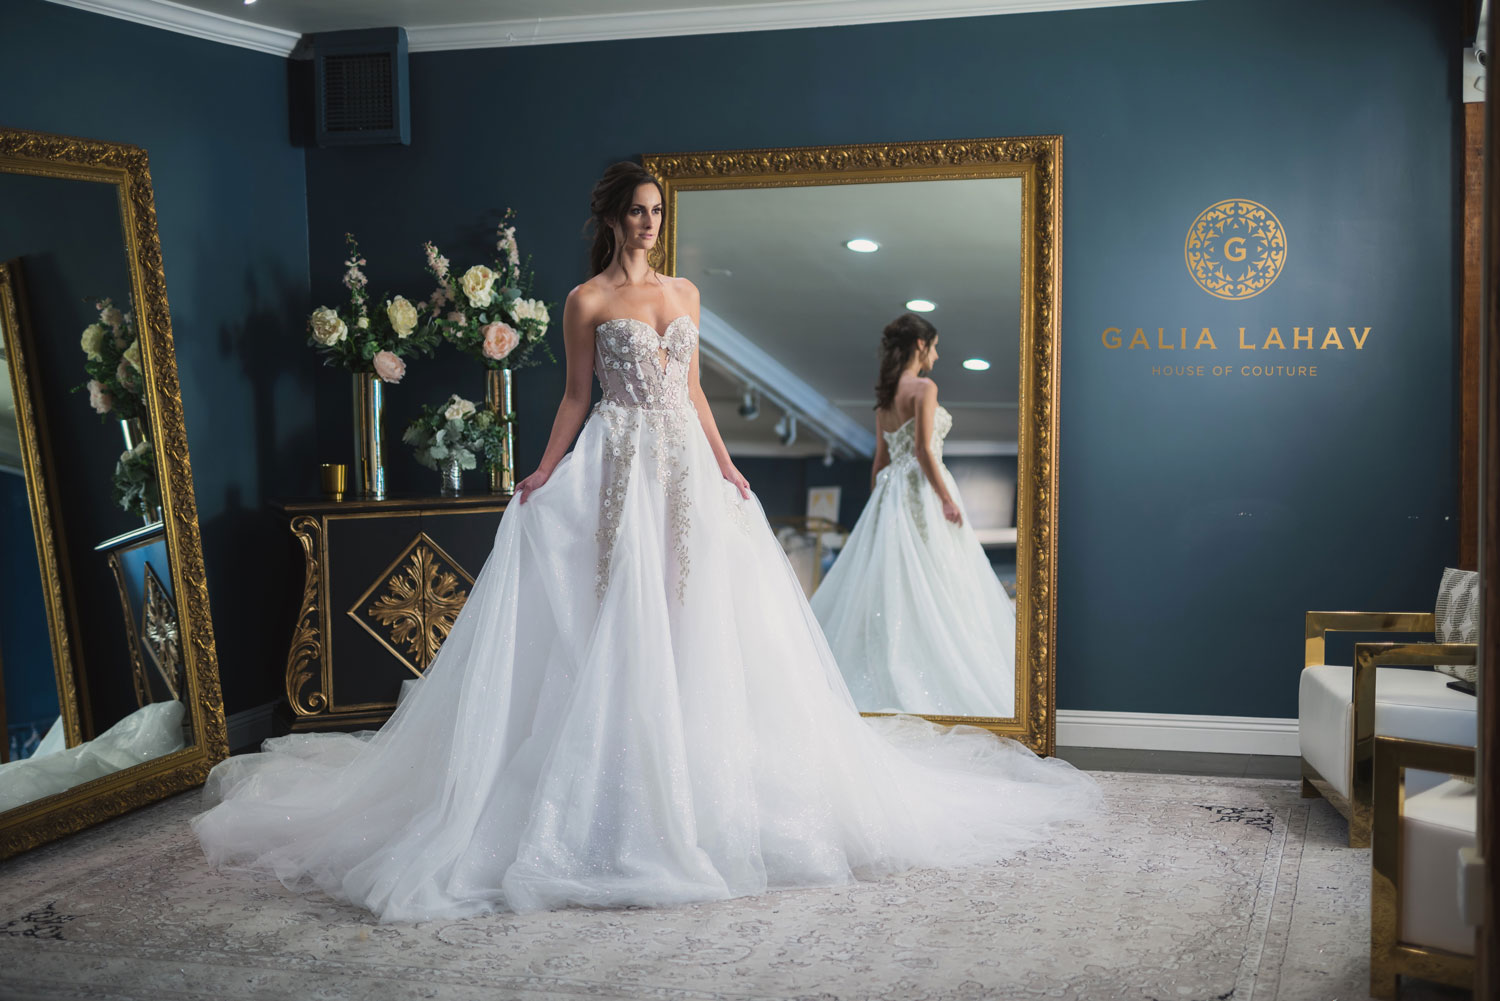 Galia Lahav Los Angeles flagship salon bridal salon wedding dresses couture gowns